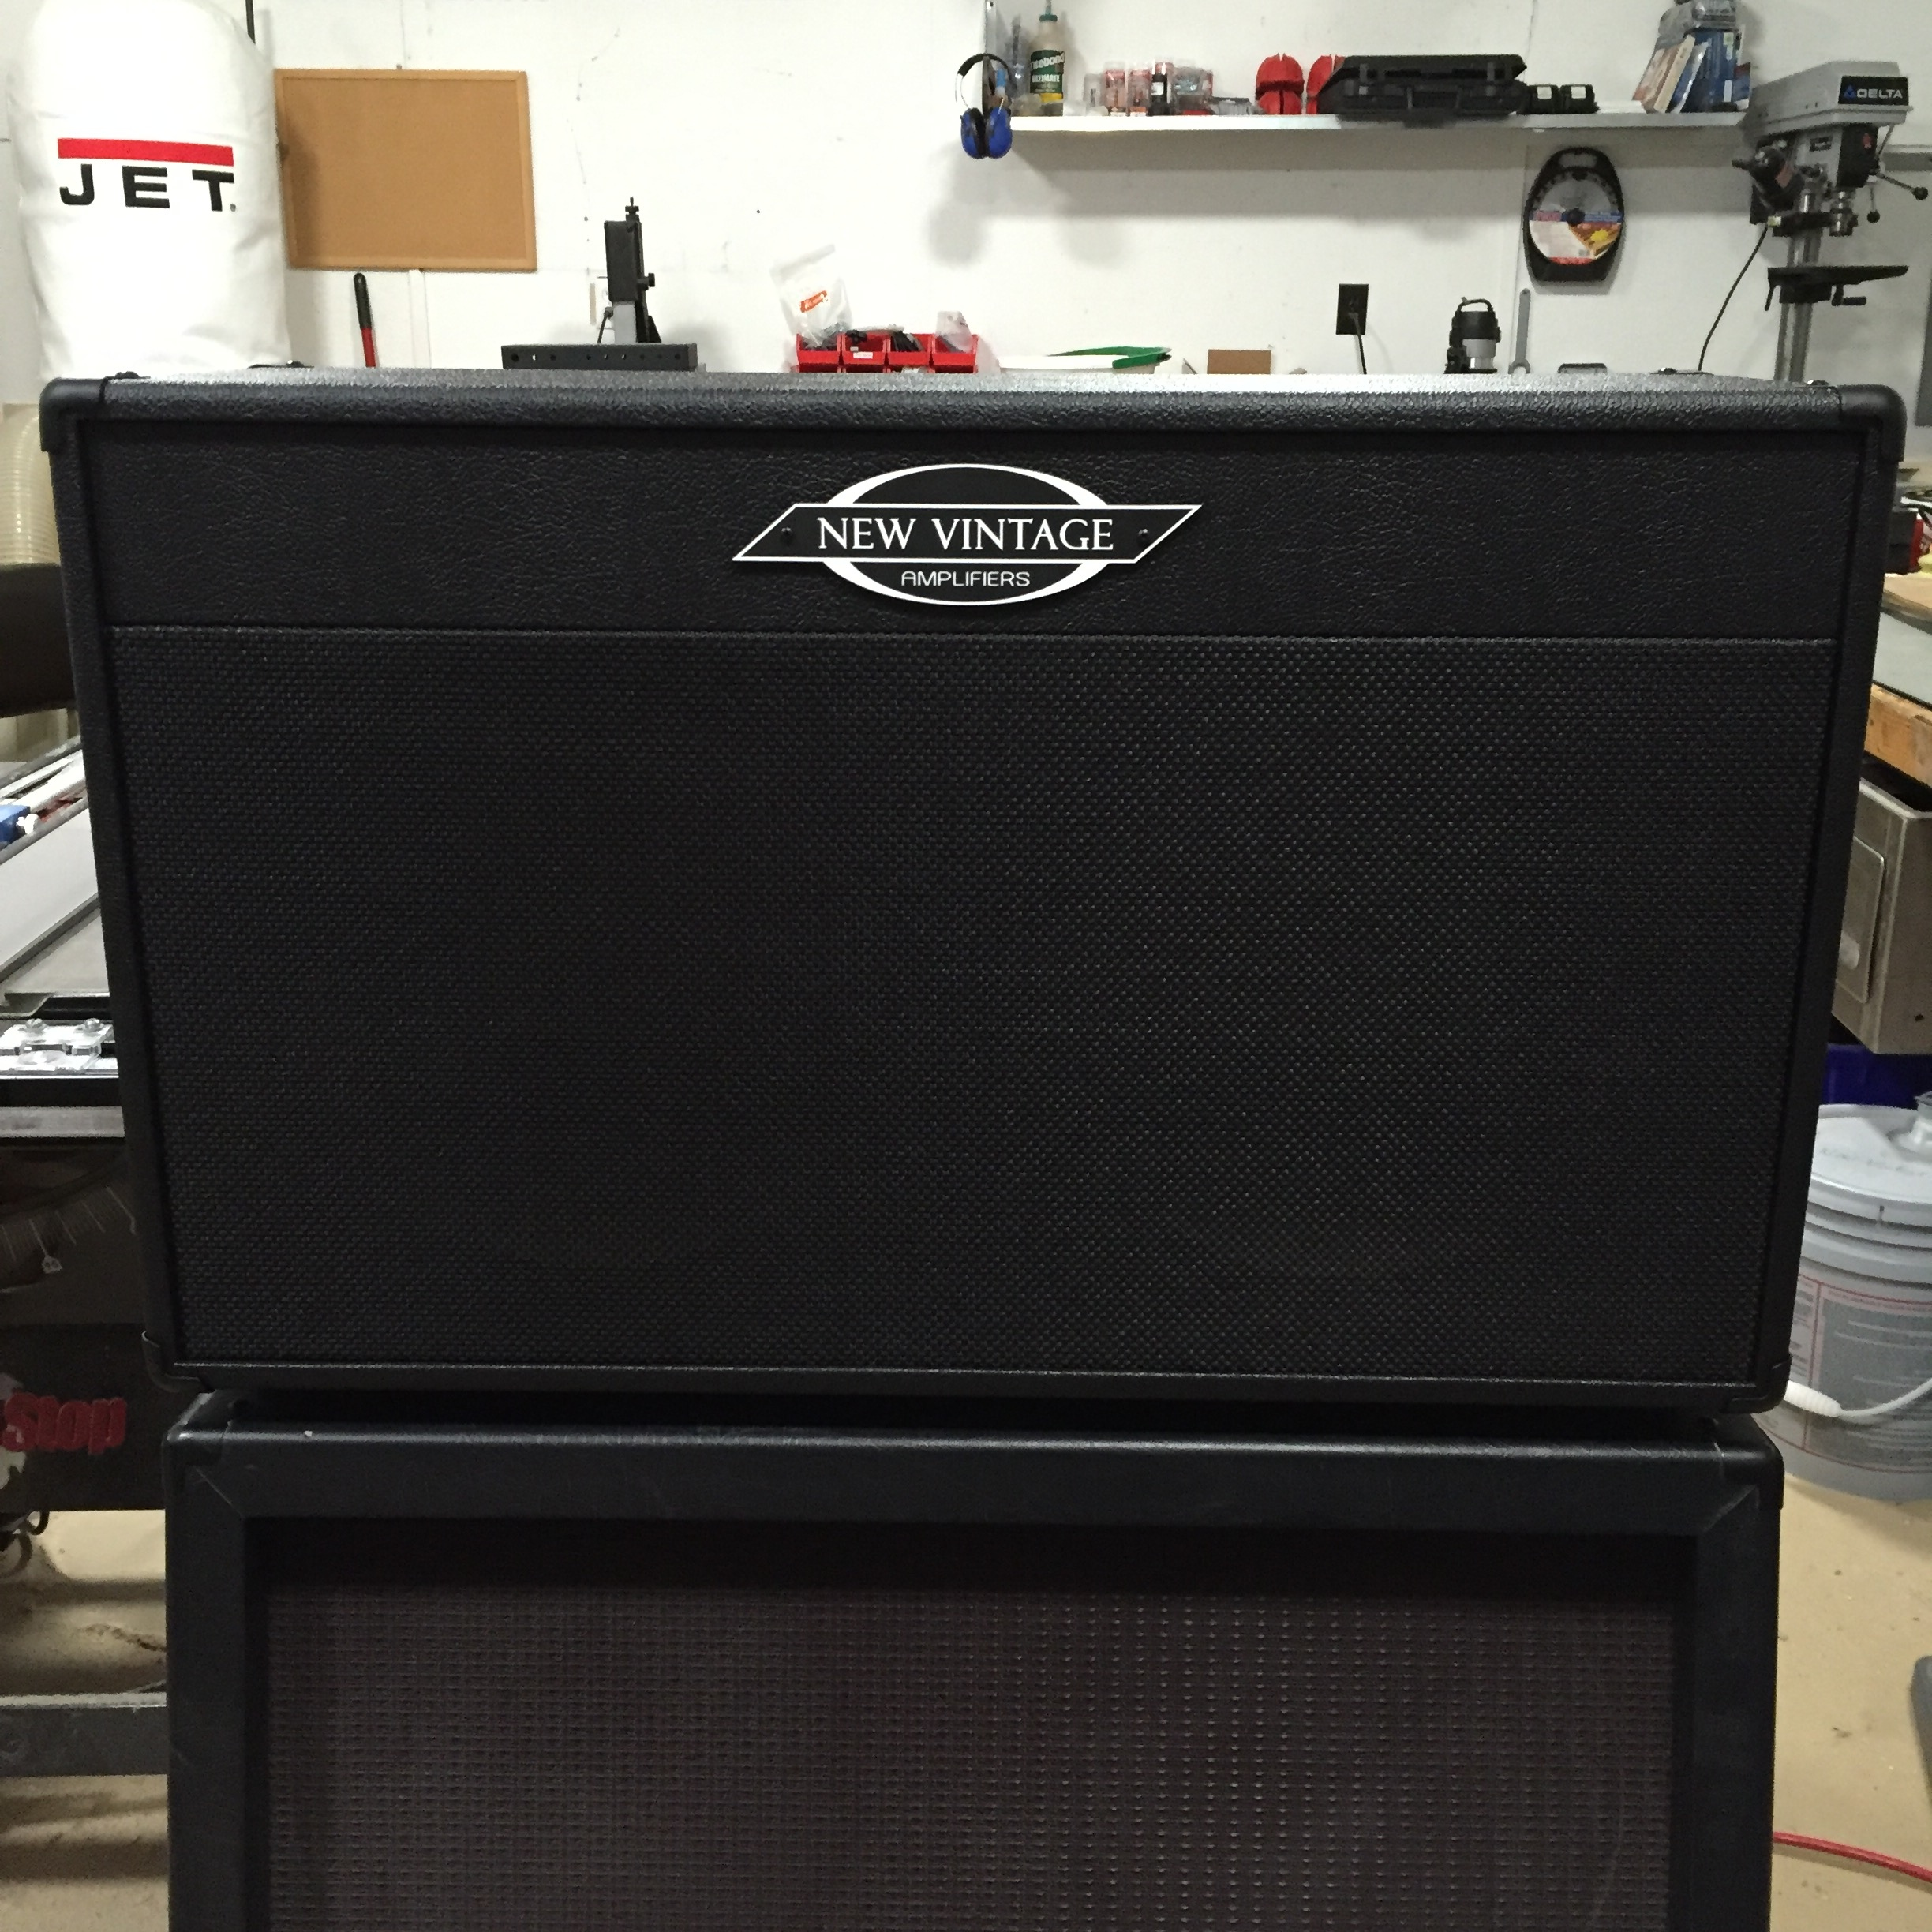 NV2X12G-shown in black levant tolex & black weave grill